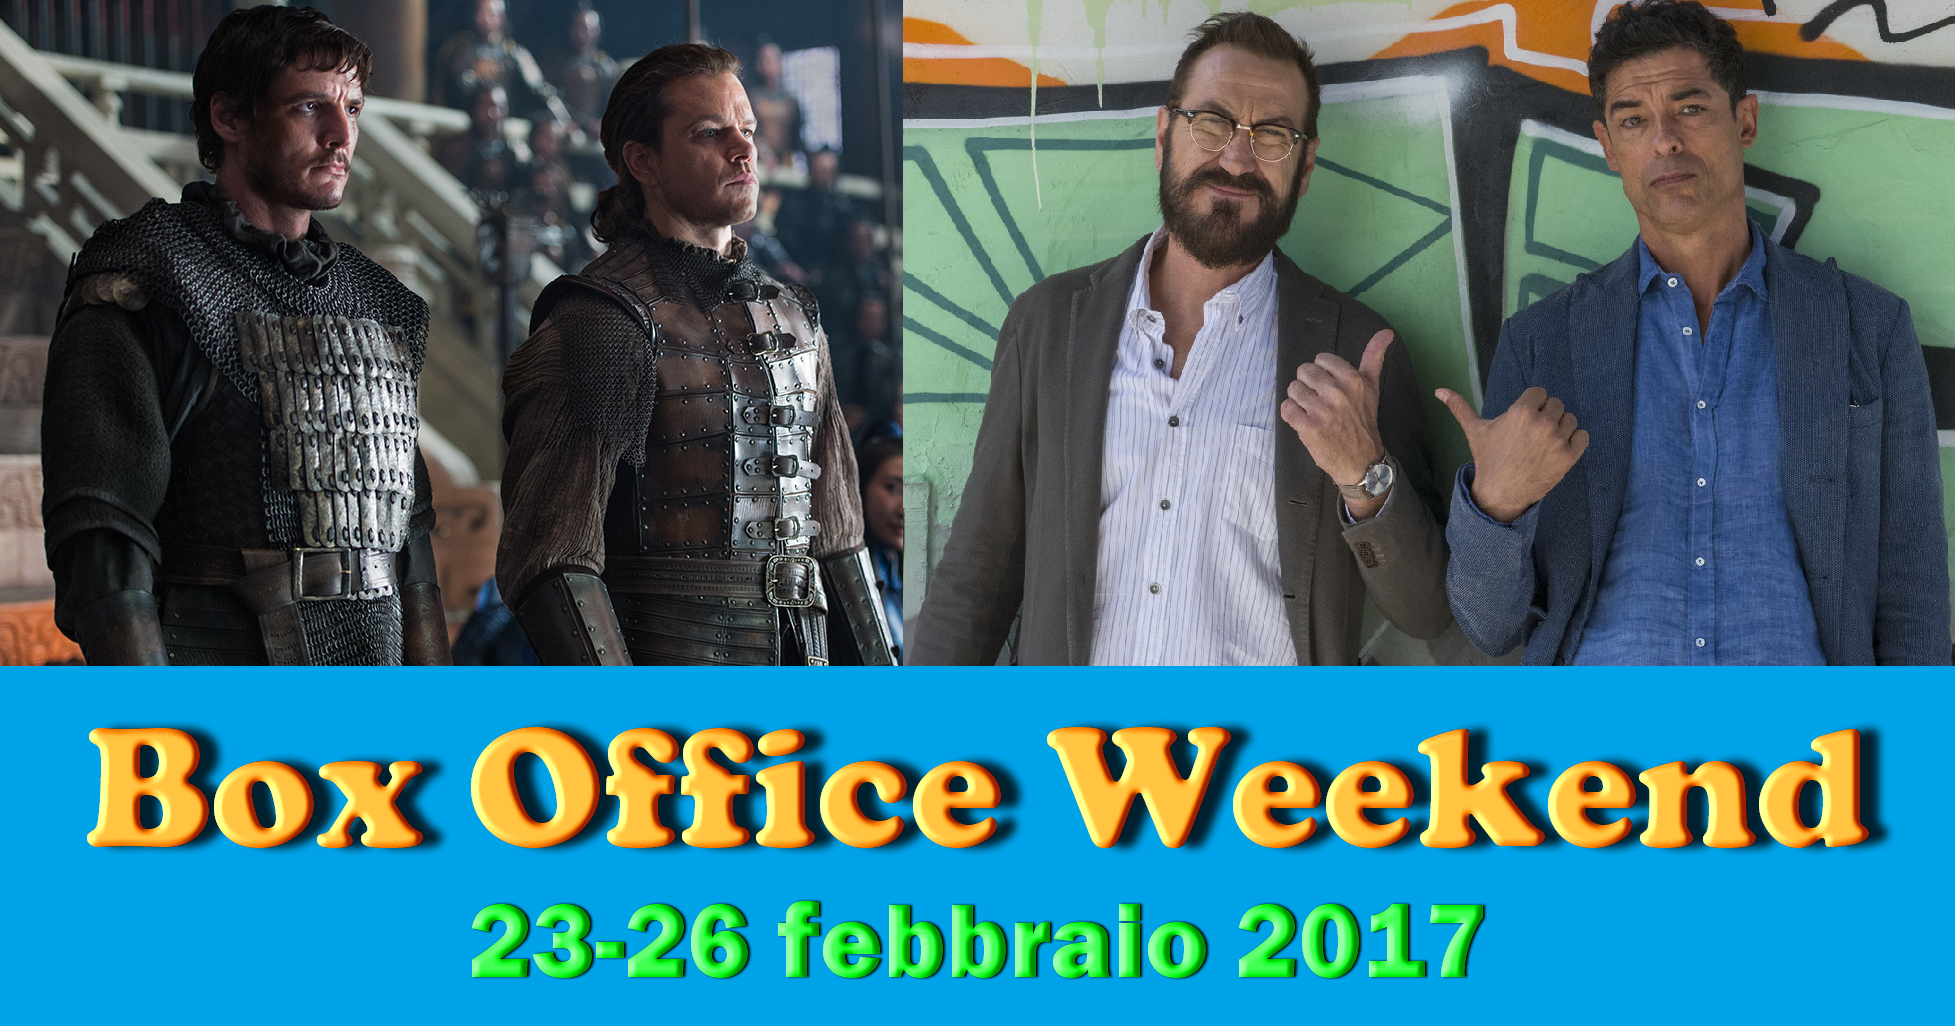 Ultimo appuntamento di febbraio con la rubrica Box Office Weekend e gli incassi del fine settimana cinematografico: testa a testa tra il fantasy The Great Wall e la commedia Beata ignoranza, […]